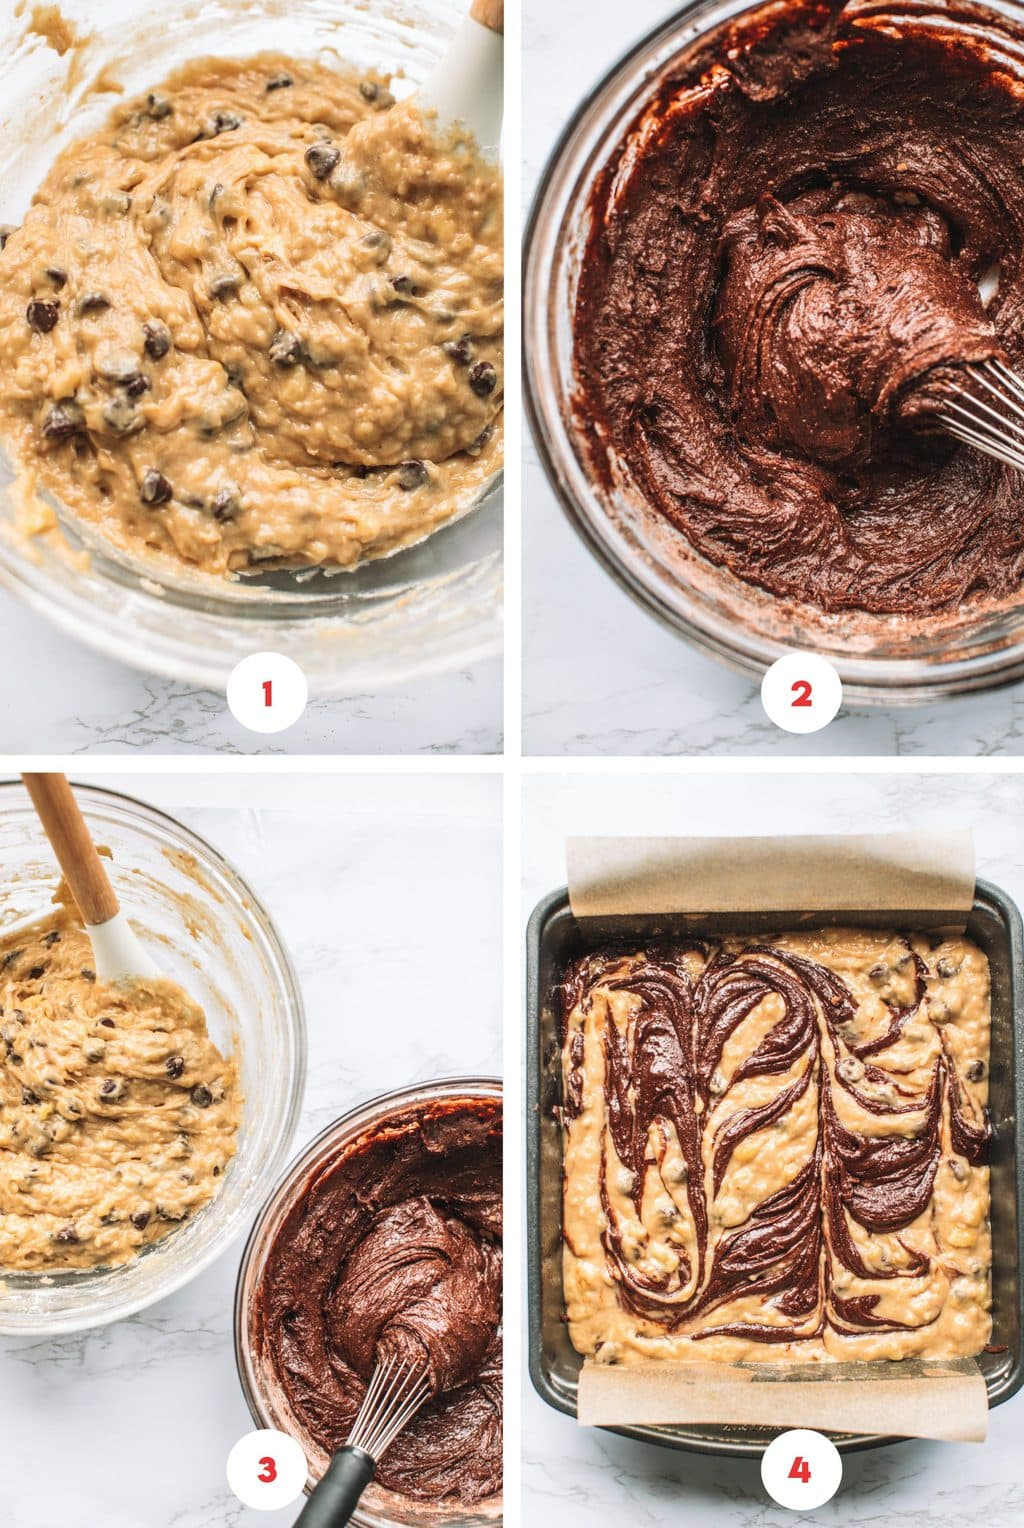 Bowls of banana bread batter, brownie batter, and swirled together in the brownie pan.